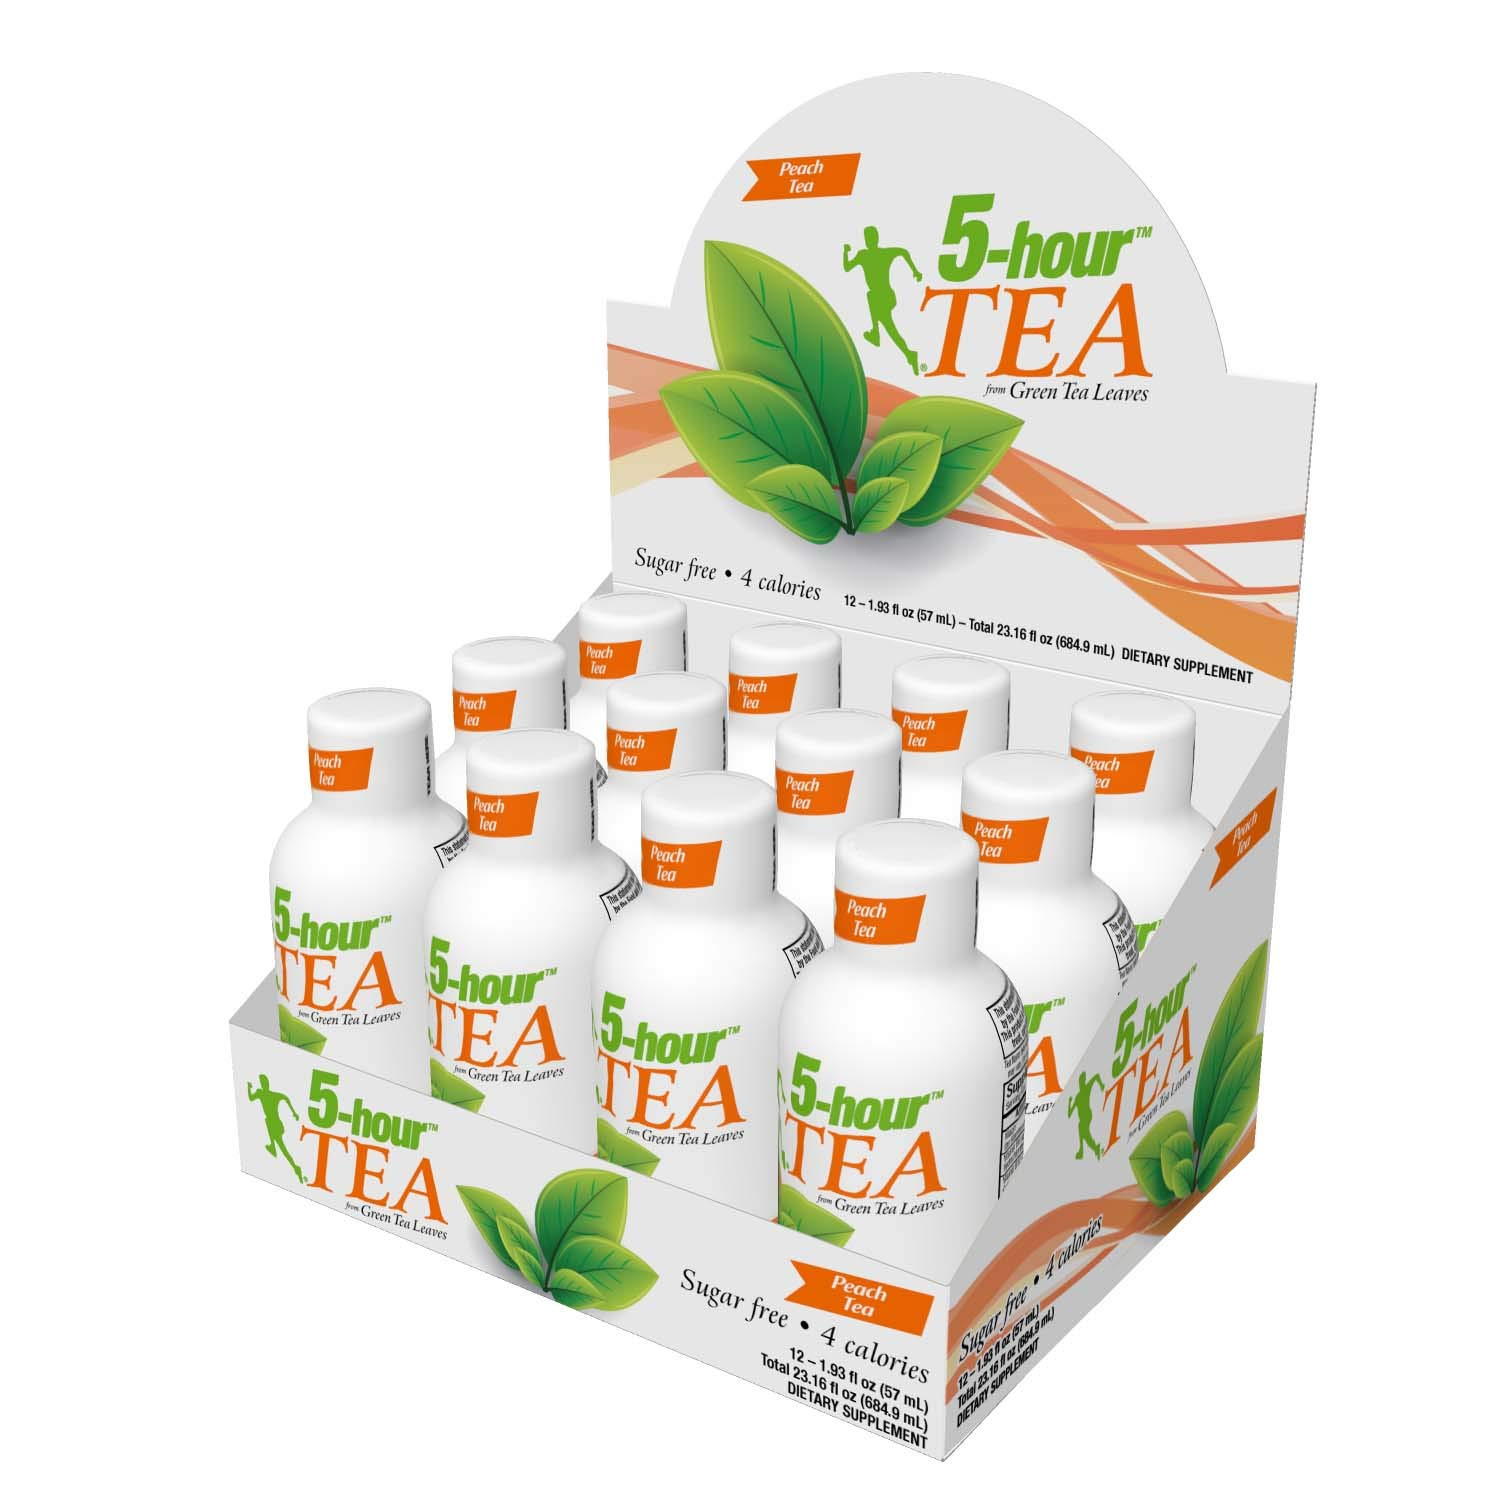 5-hour TEA, Peach Tea Flavored Energy Shots, 1.93 oz, 24 Count by 5-hour ENERGY (Image #2)